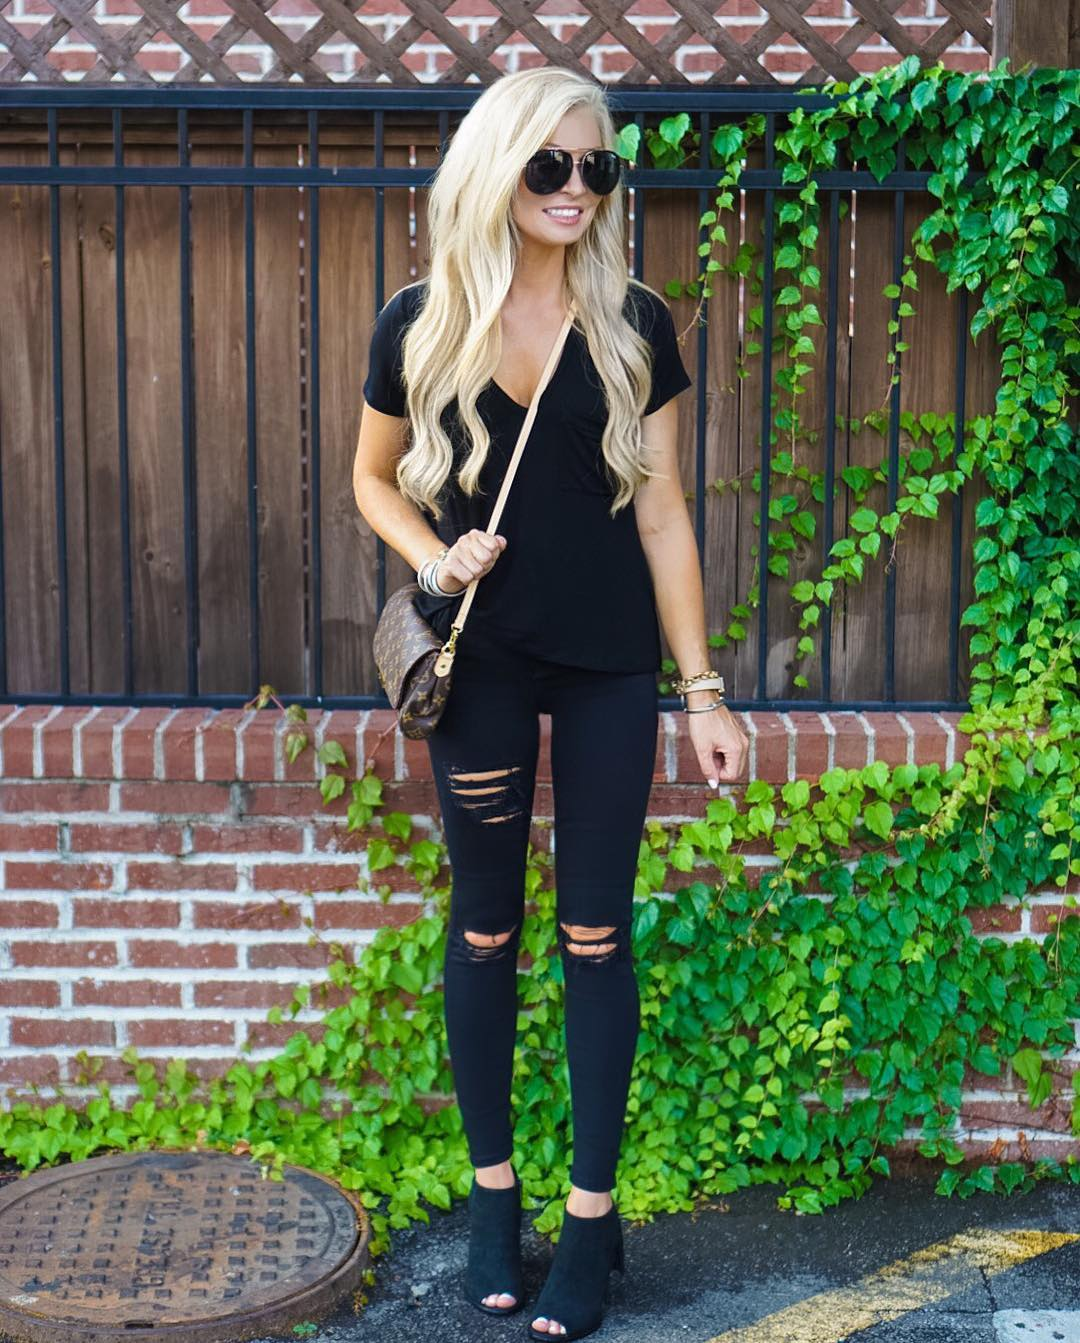 Out in all black for chips and guac! ✌️ #rippedjeansarelife http://liketk.it/2p1Wy #saturdaze #ootd #wiw